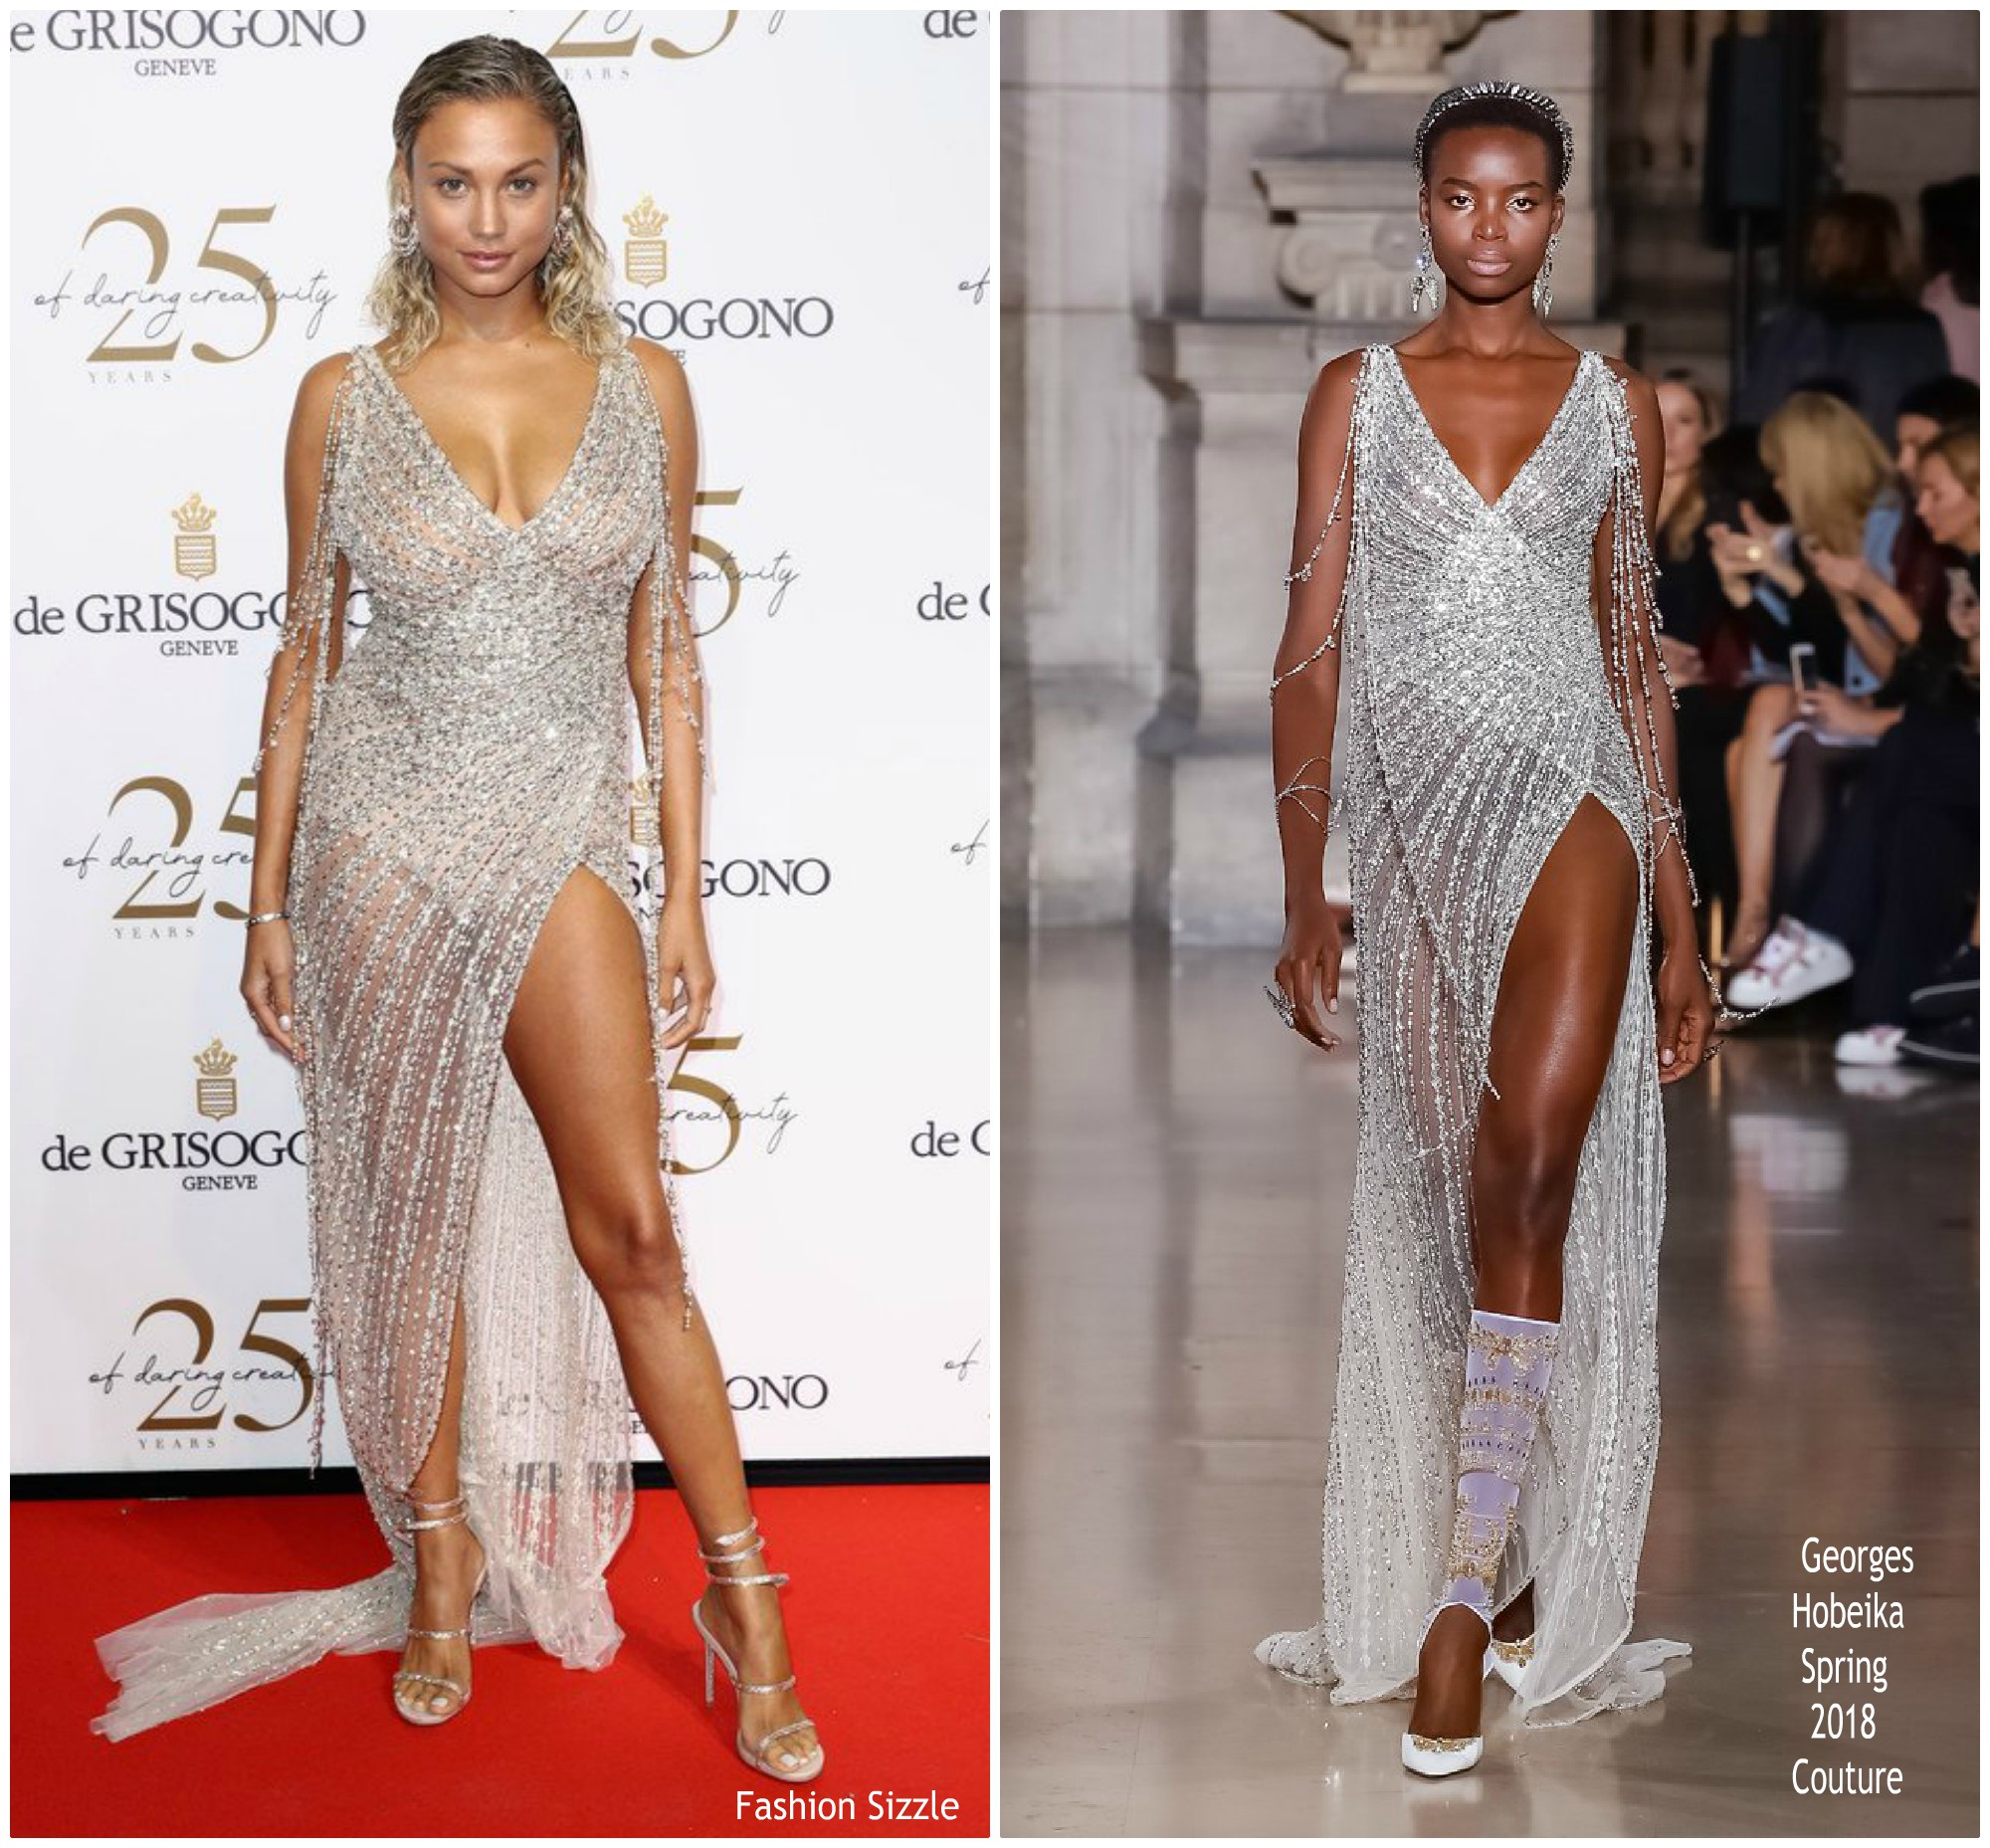 rose-bertram-in-georges-hobeika-couture-2018-degrisogono-cannes-party